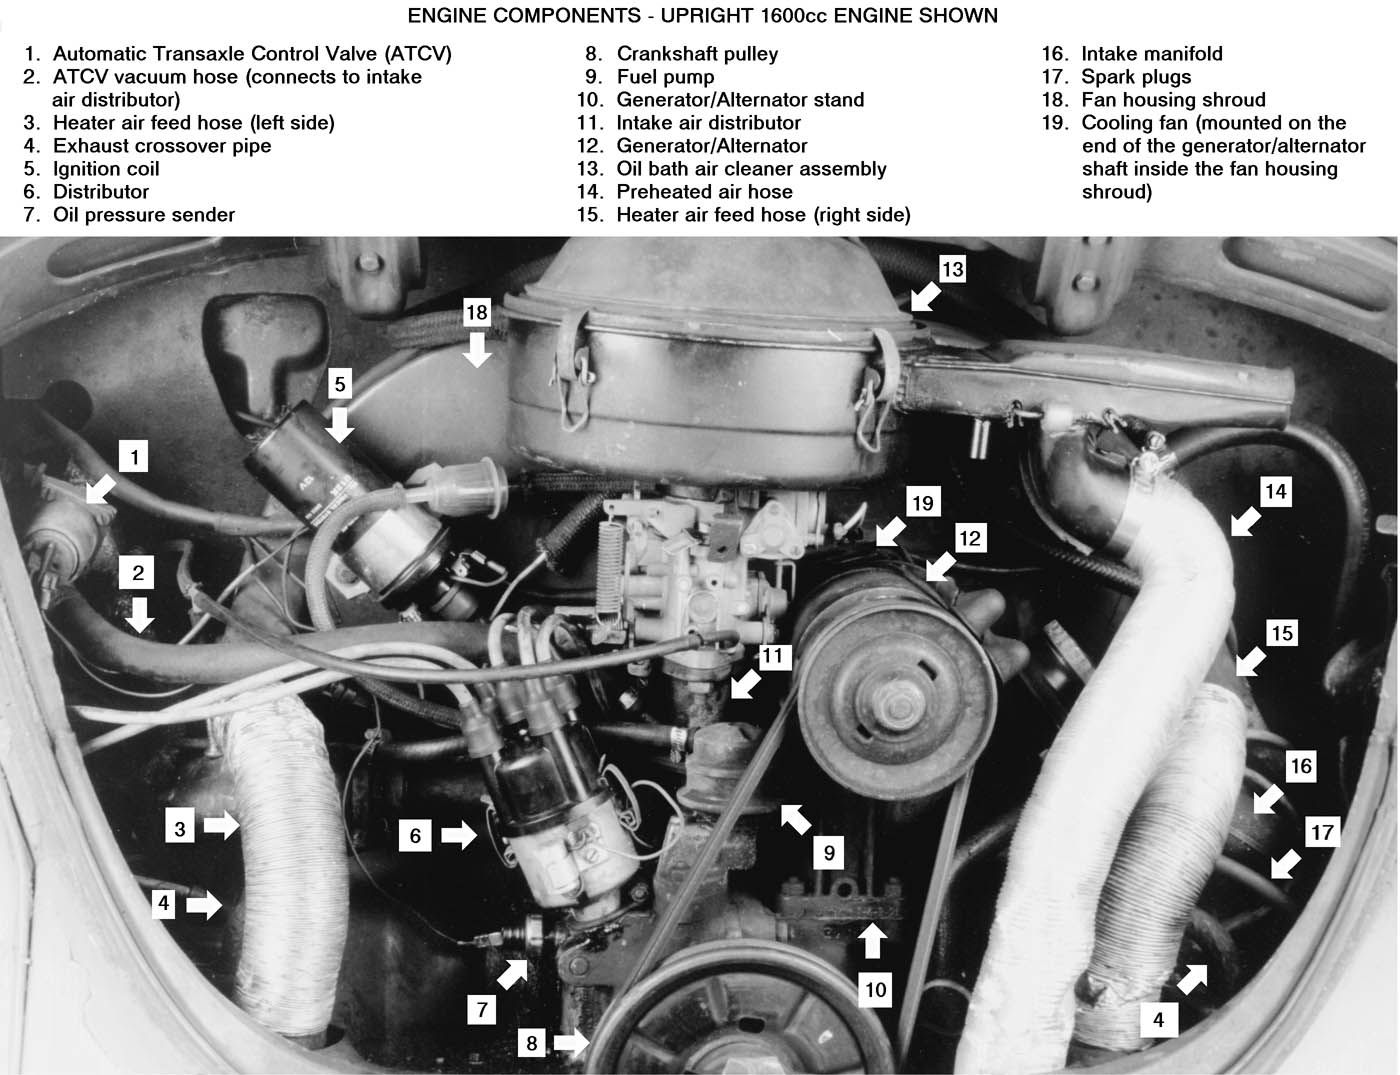 1972 vw beetle engine diagram starter vw download free image about wiring diagram [ 1400 x 1075 Pixel ]